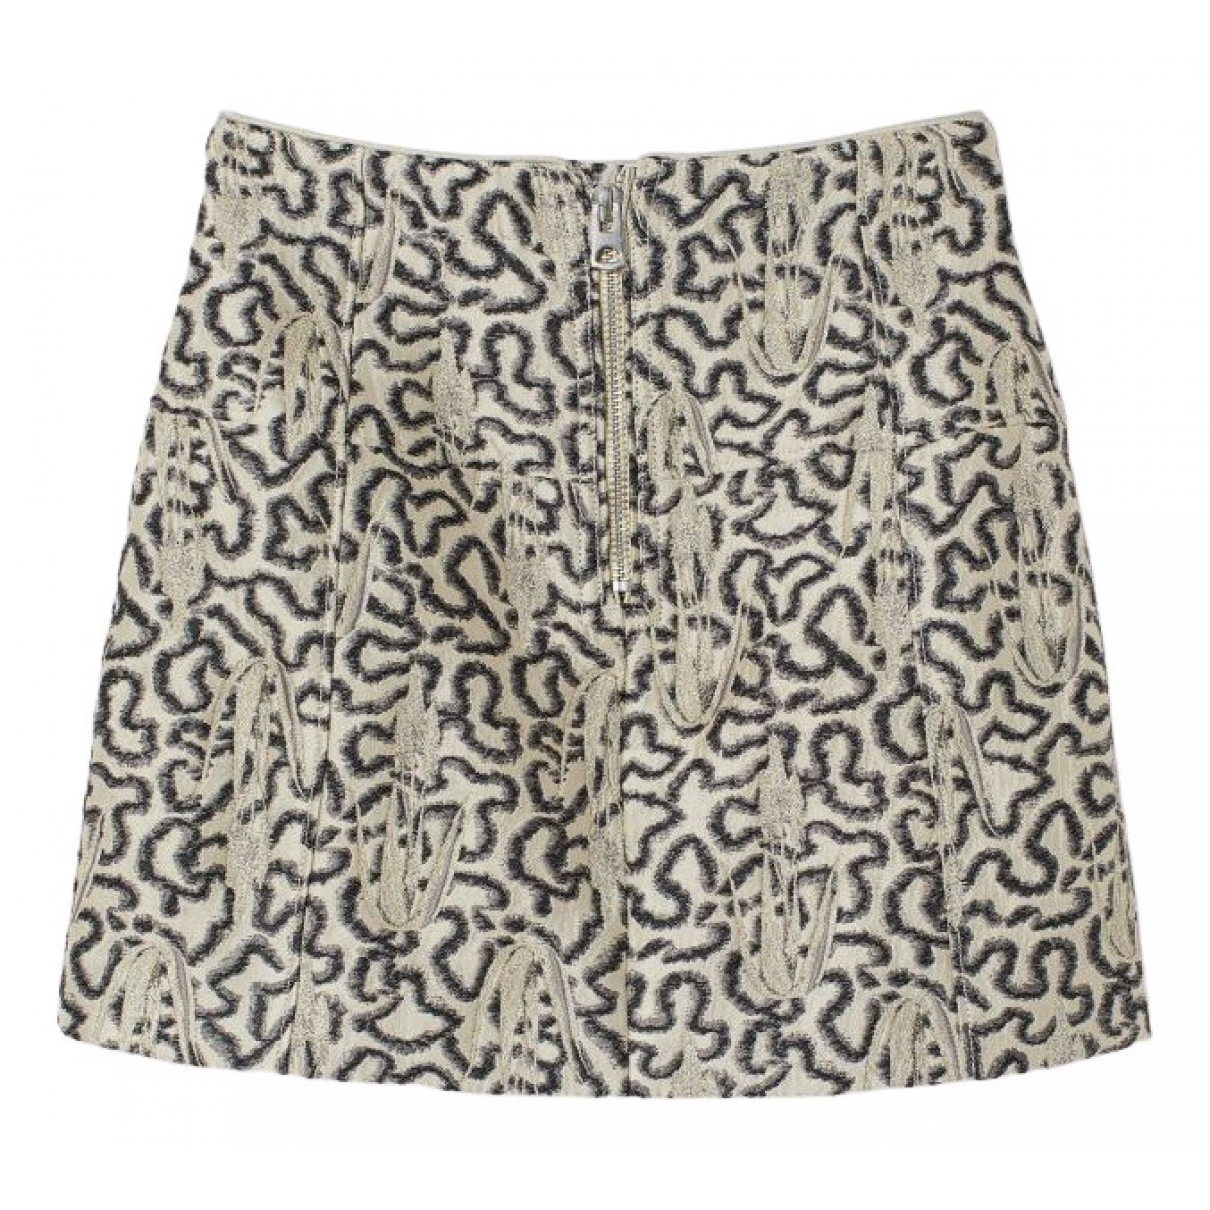 H&m Conscious Exclusive N Beige skirt for Women 6 UK